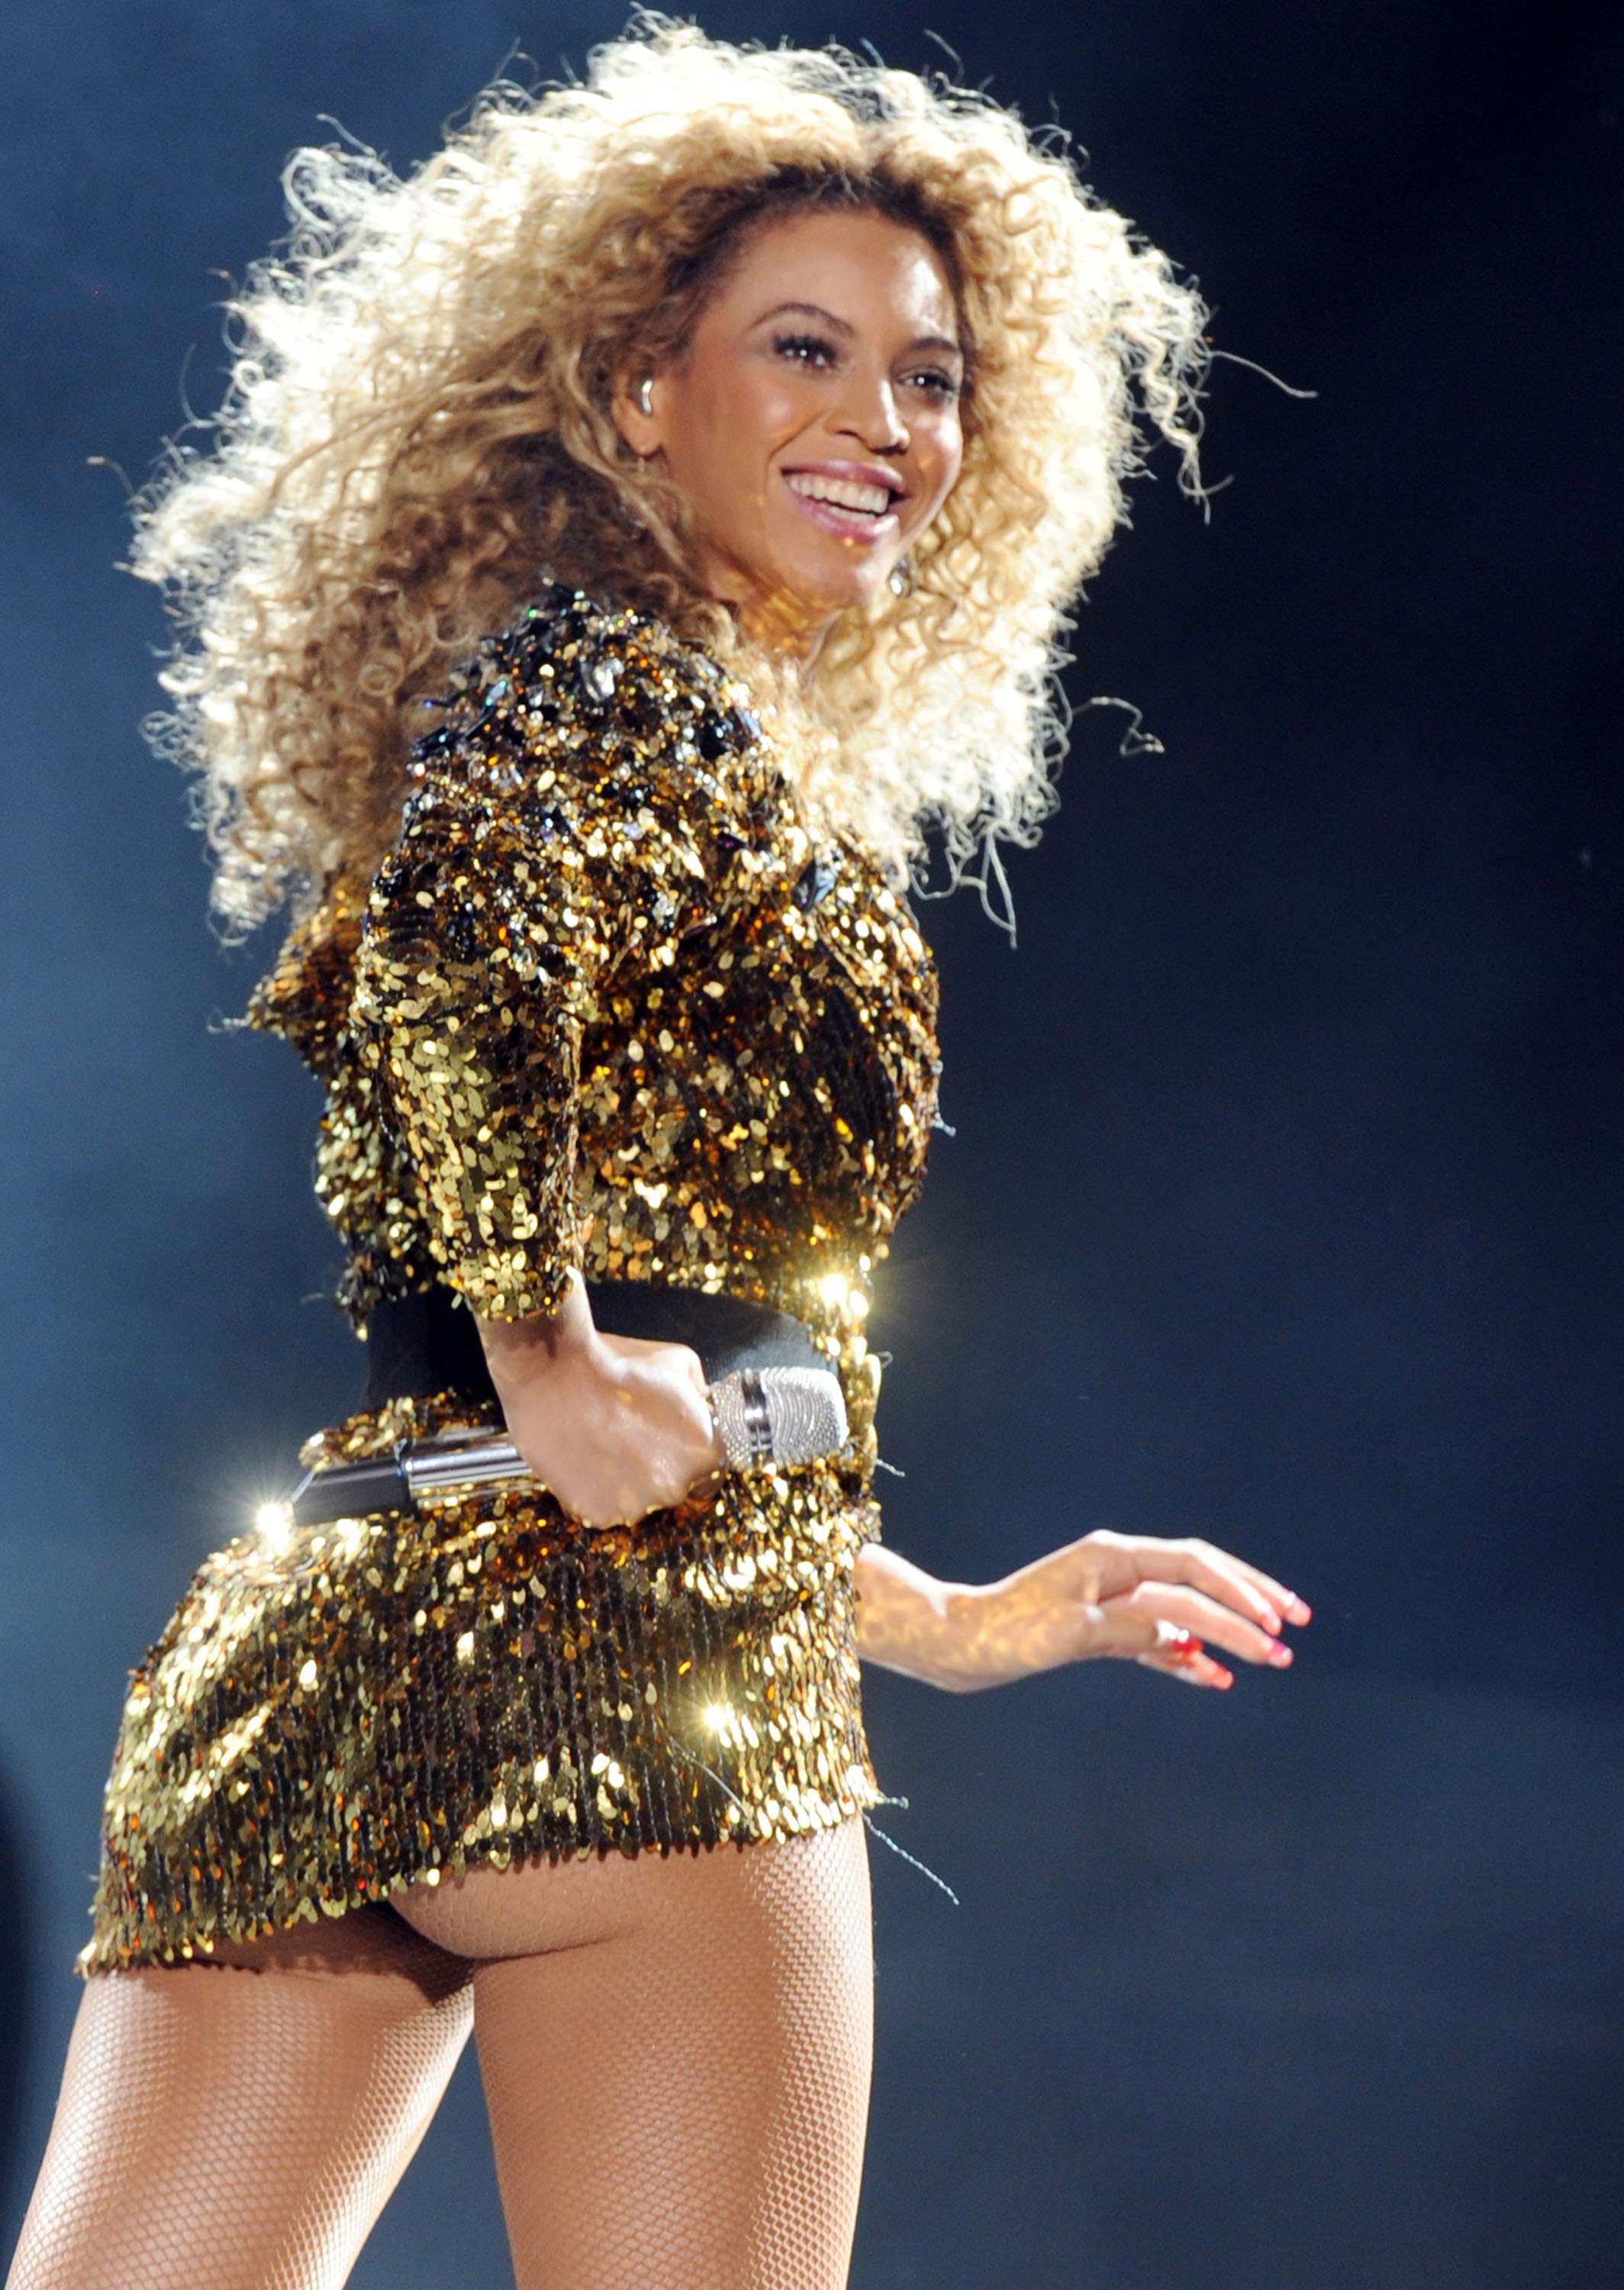 Beyonce at The 2011 Glastonbury Music Festival held at Worthy Farm in Pilton - Day 3